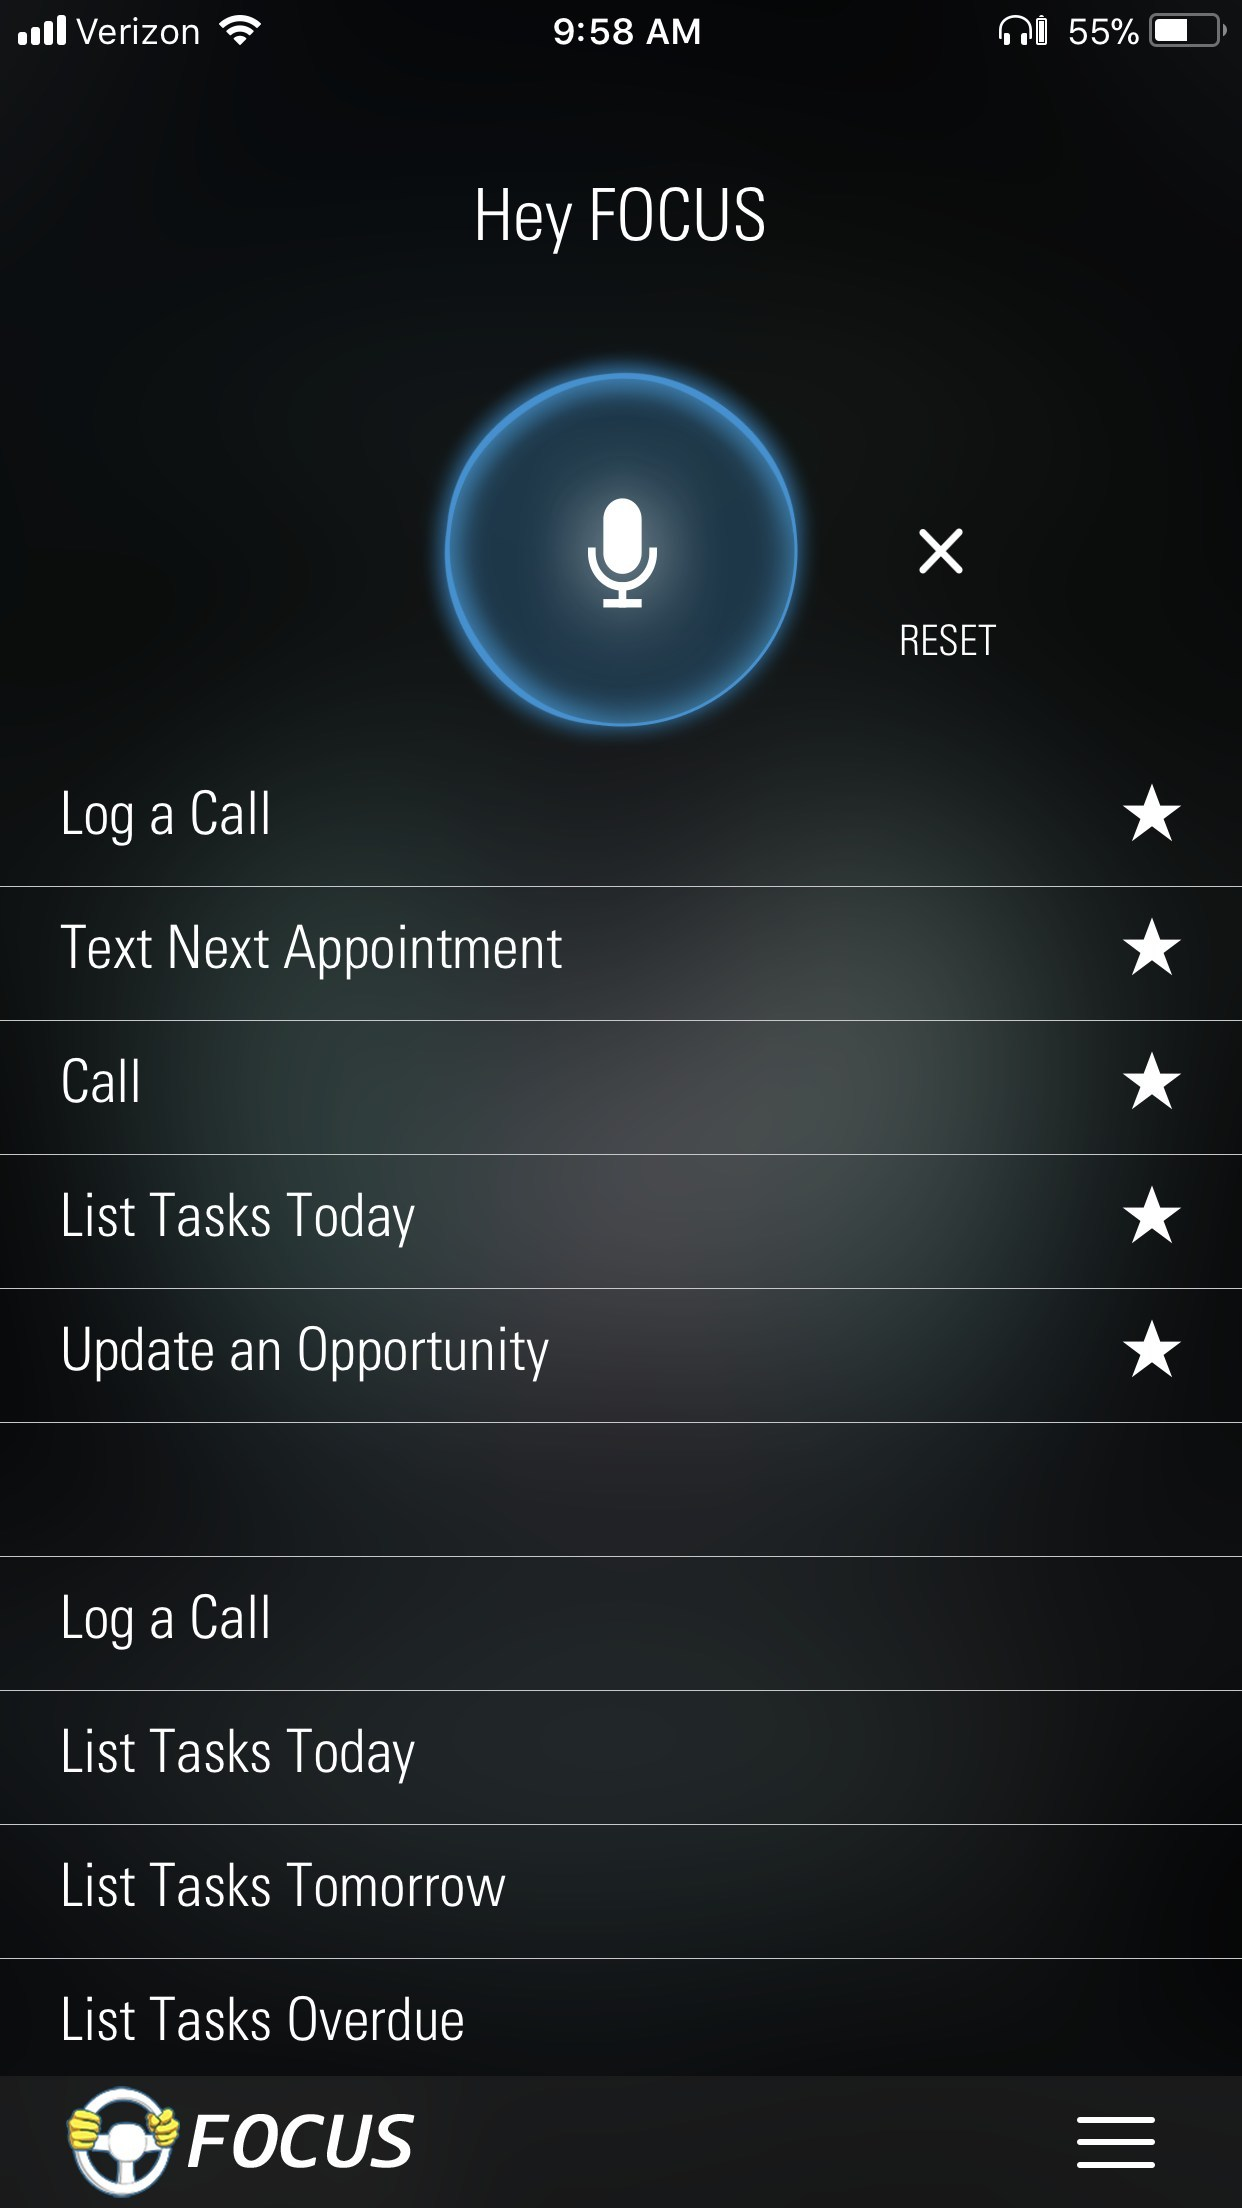 Over 35 commands are available by voice or touch. The five most frequently used are at the top for convenience.